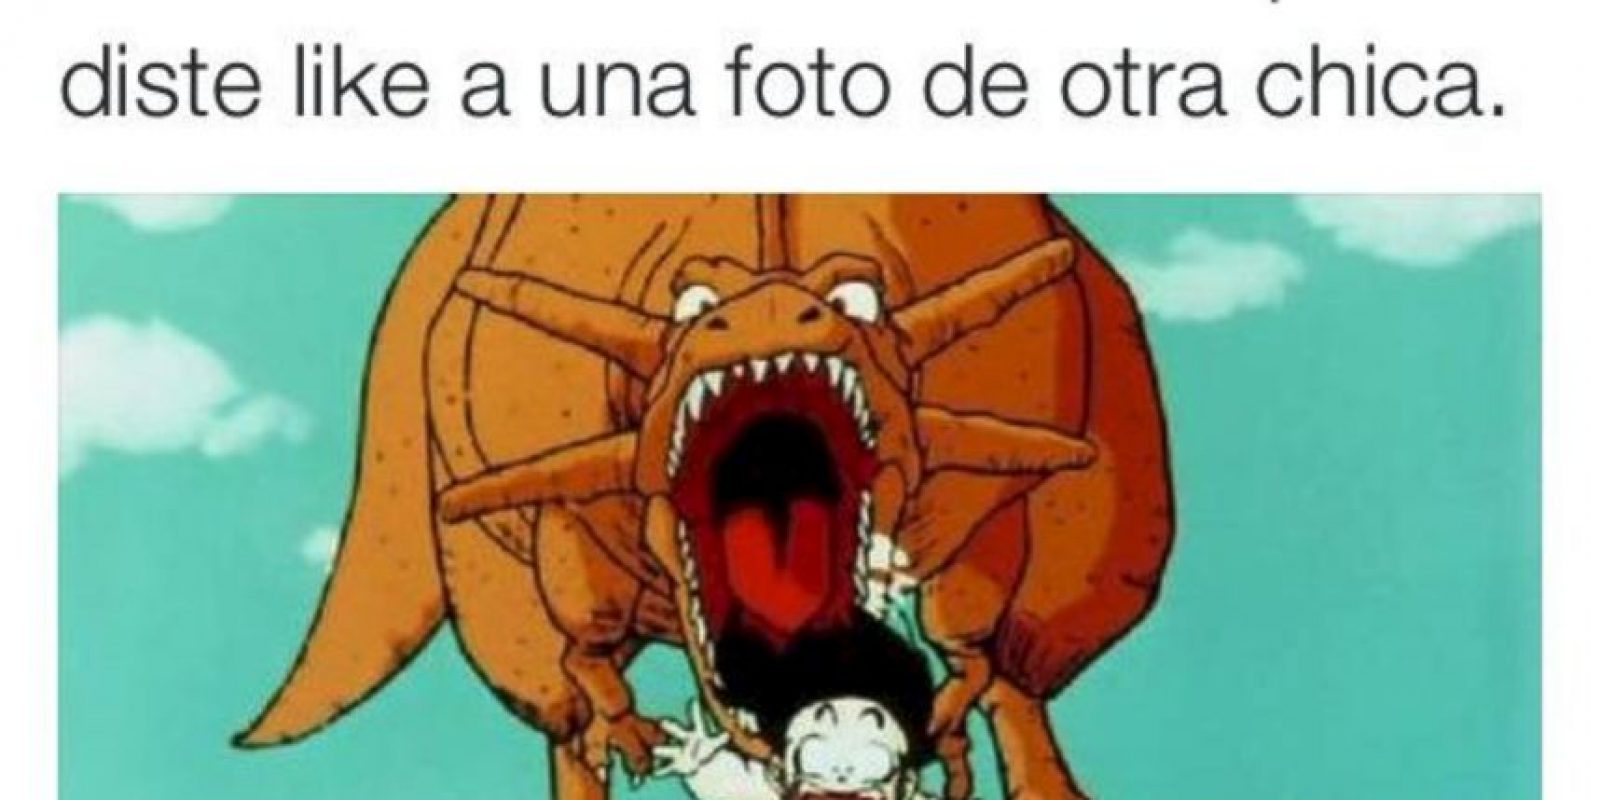 Los memes de Dragon Ball llegaron a un nuevo nivel. Foto: Bullying Mexicano/Facebook